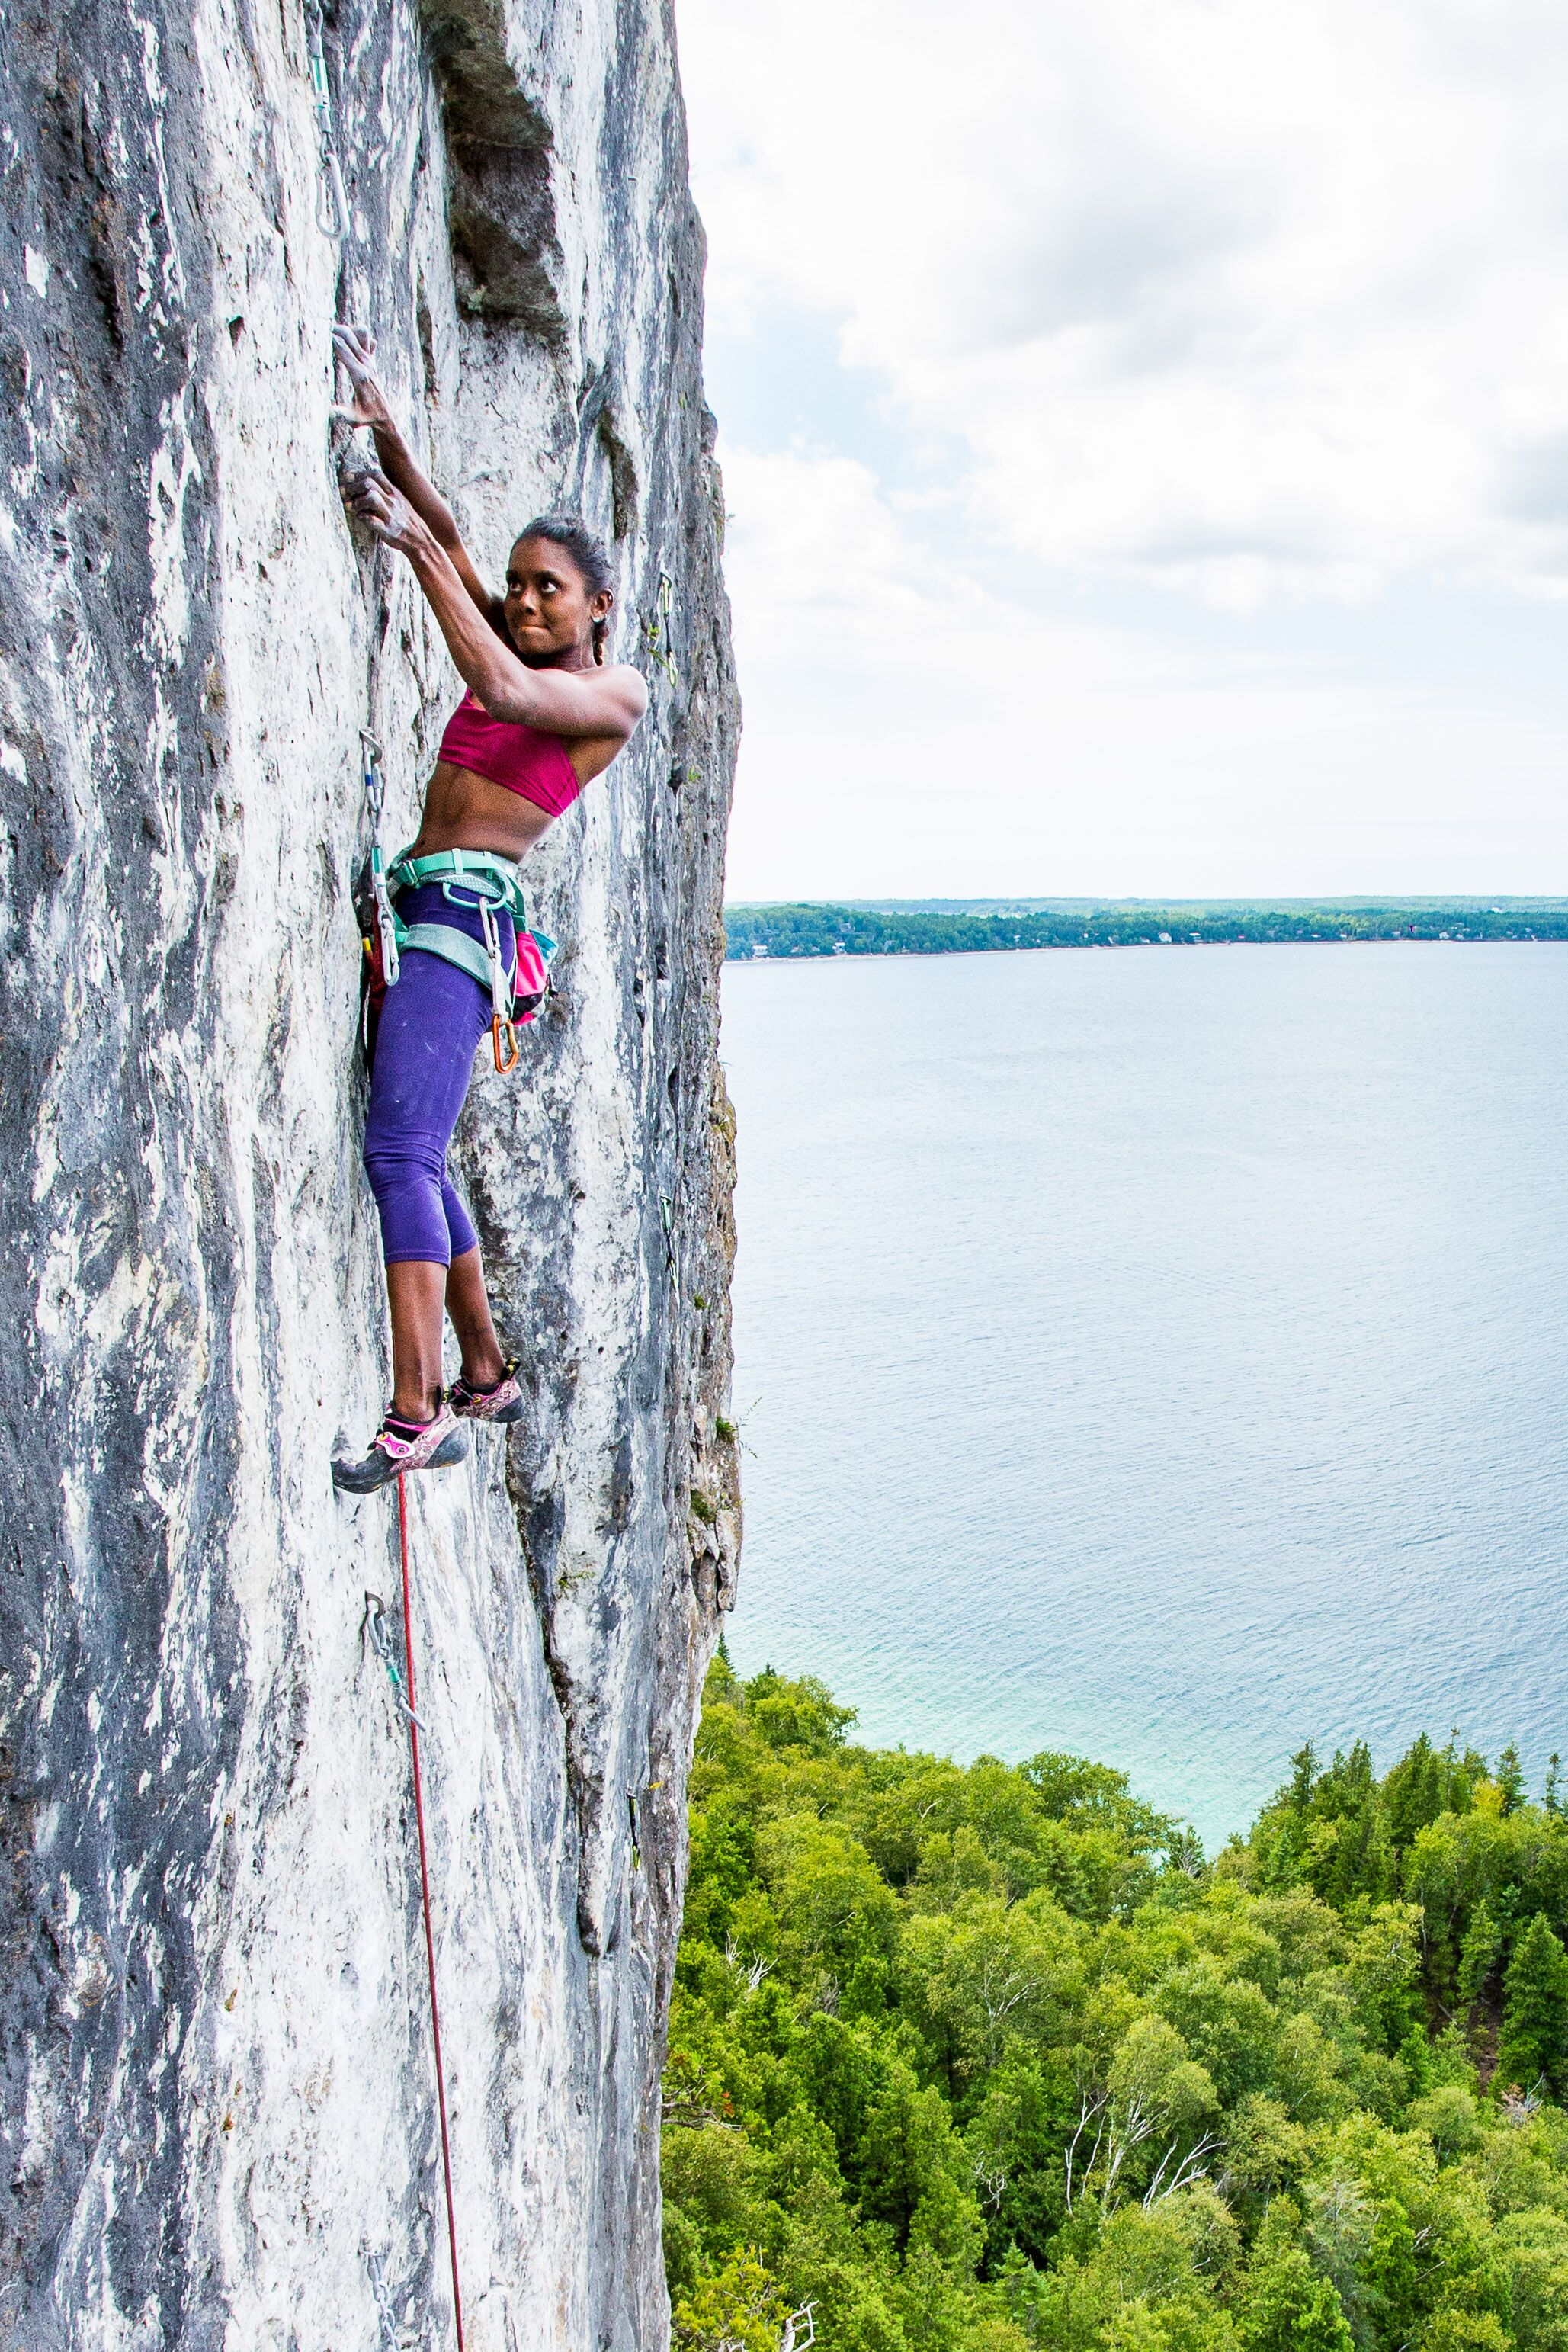 Sabrina climbs her 5.14a project, Titan, in Bruce Peninsula National Park, Ontario, Canada.  Photo courtesy of Shawn Robertson